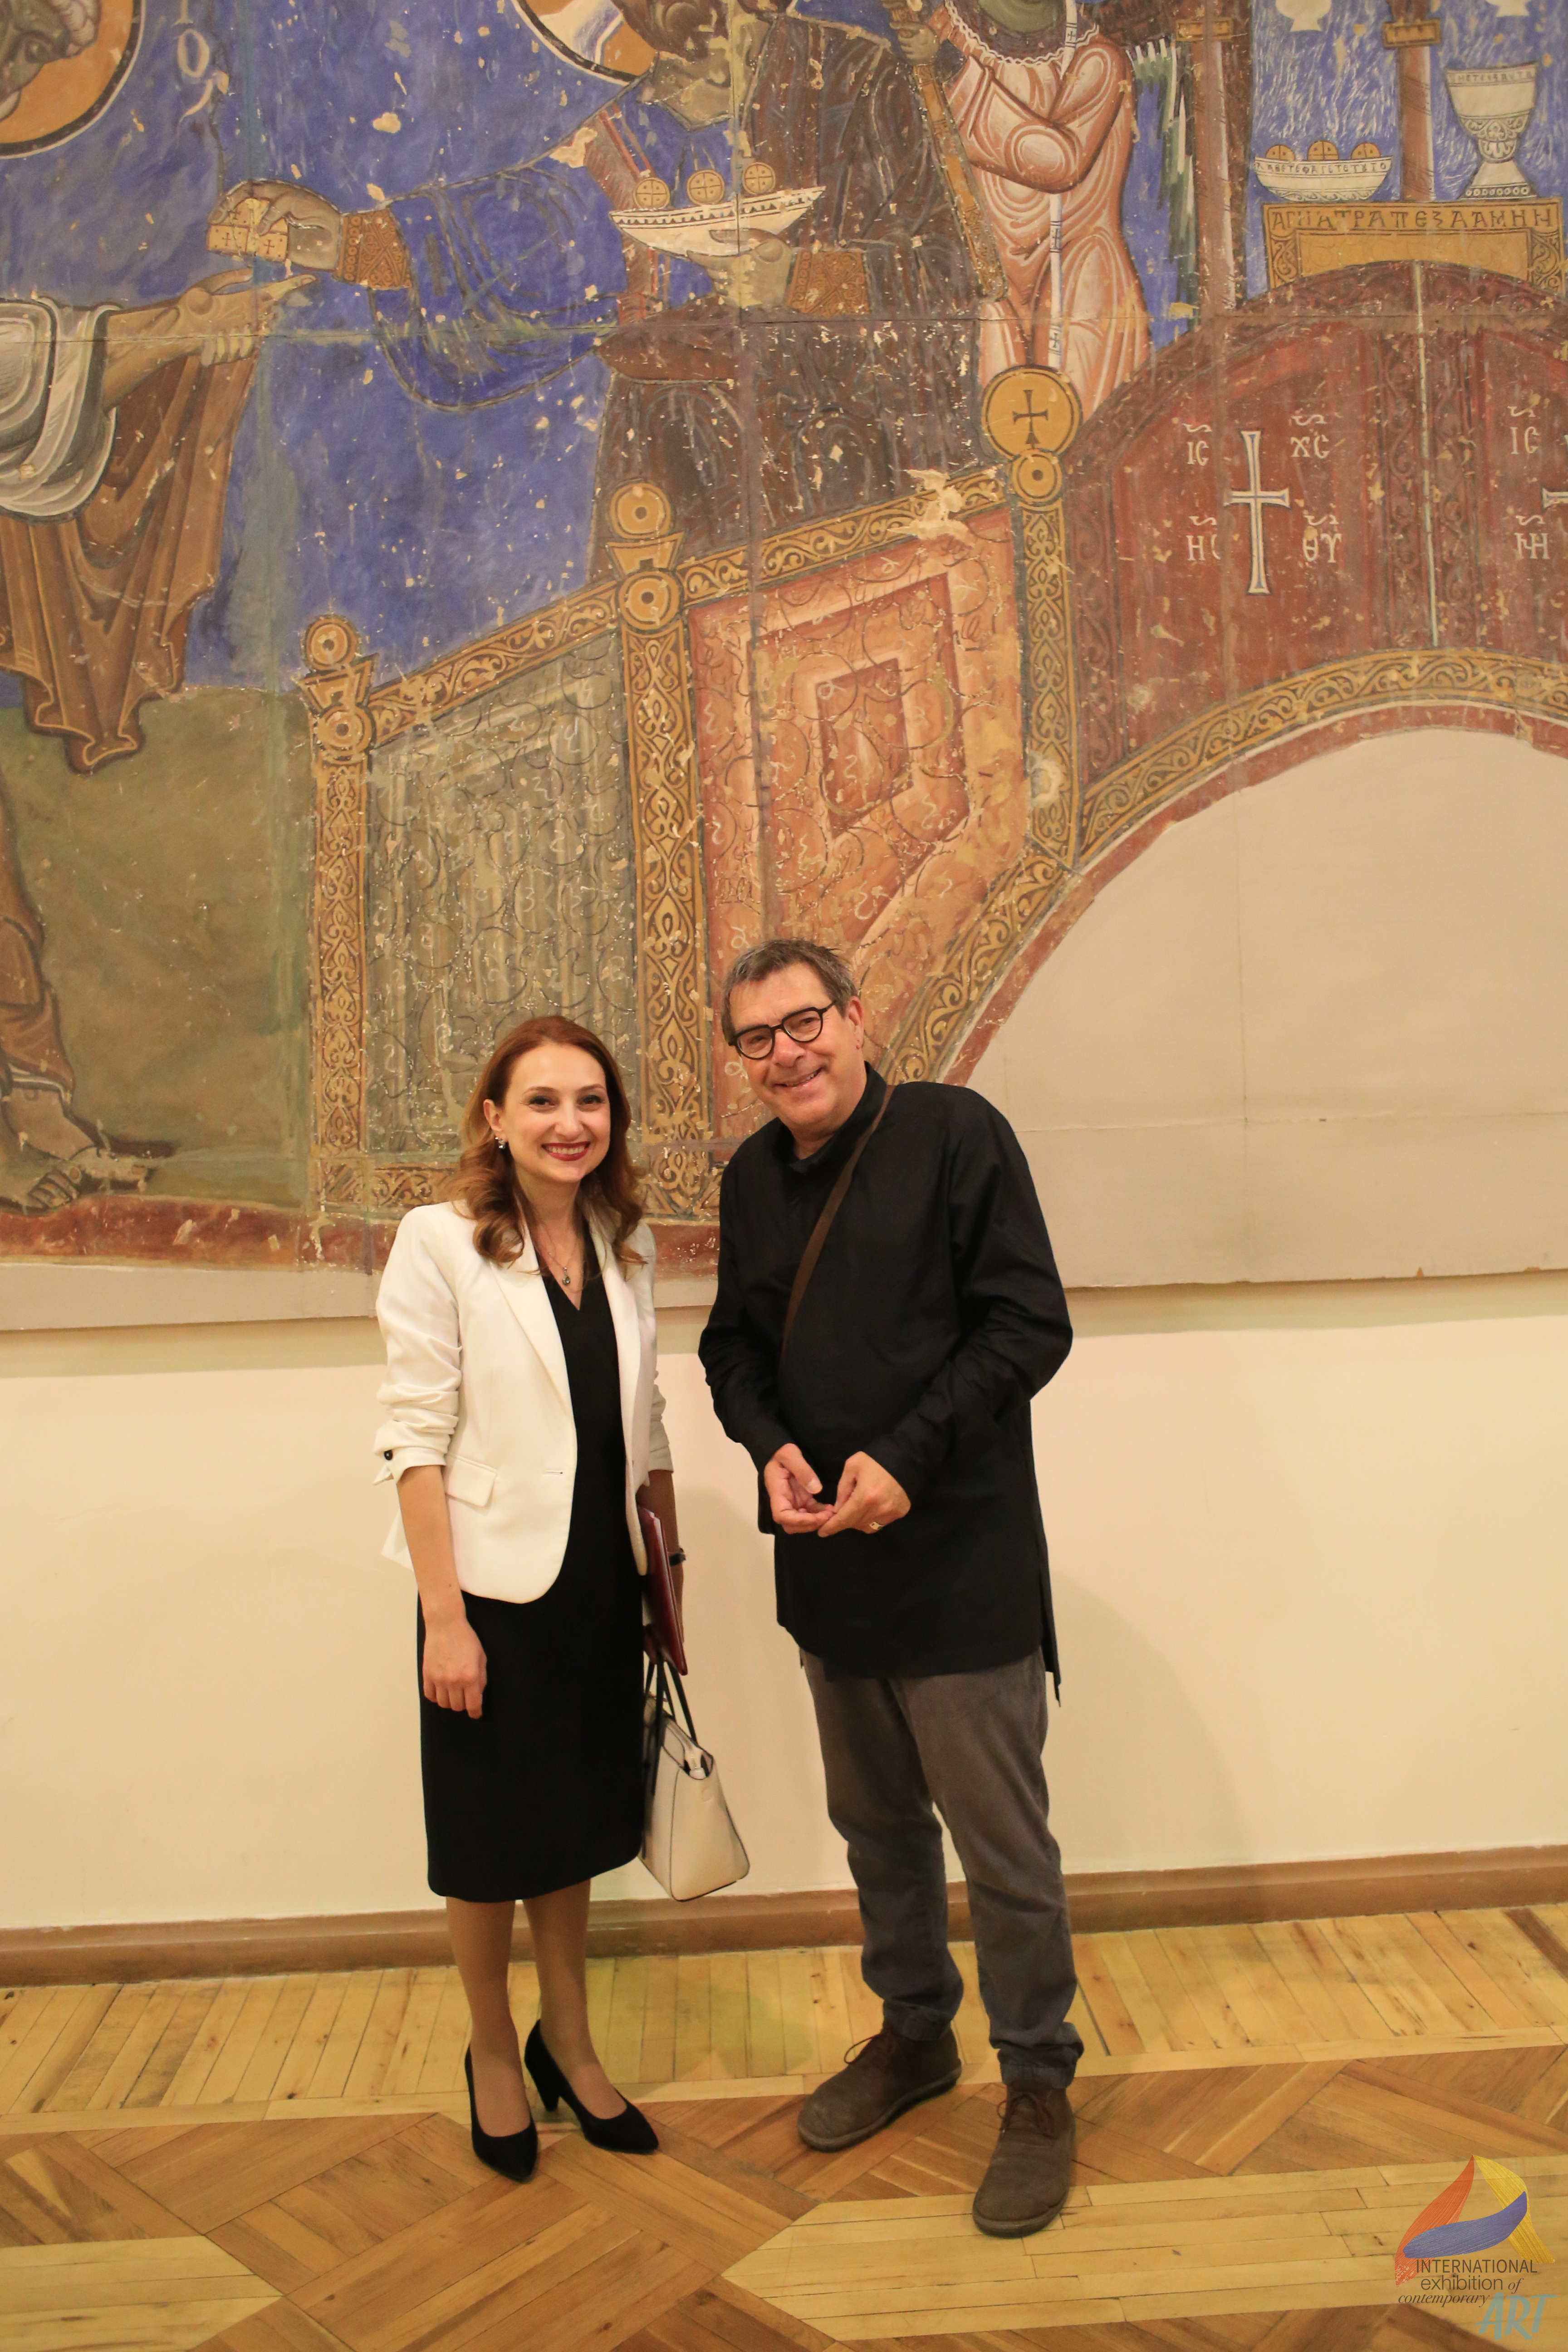 Minister_of_Culture_Armenia_Lilit Makunts_and_composer-sonic_artist_Roland_Kuit.jpg